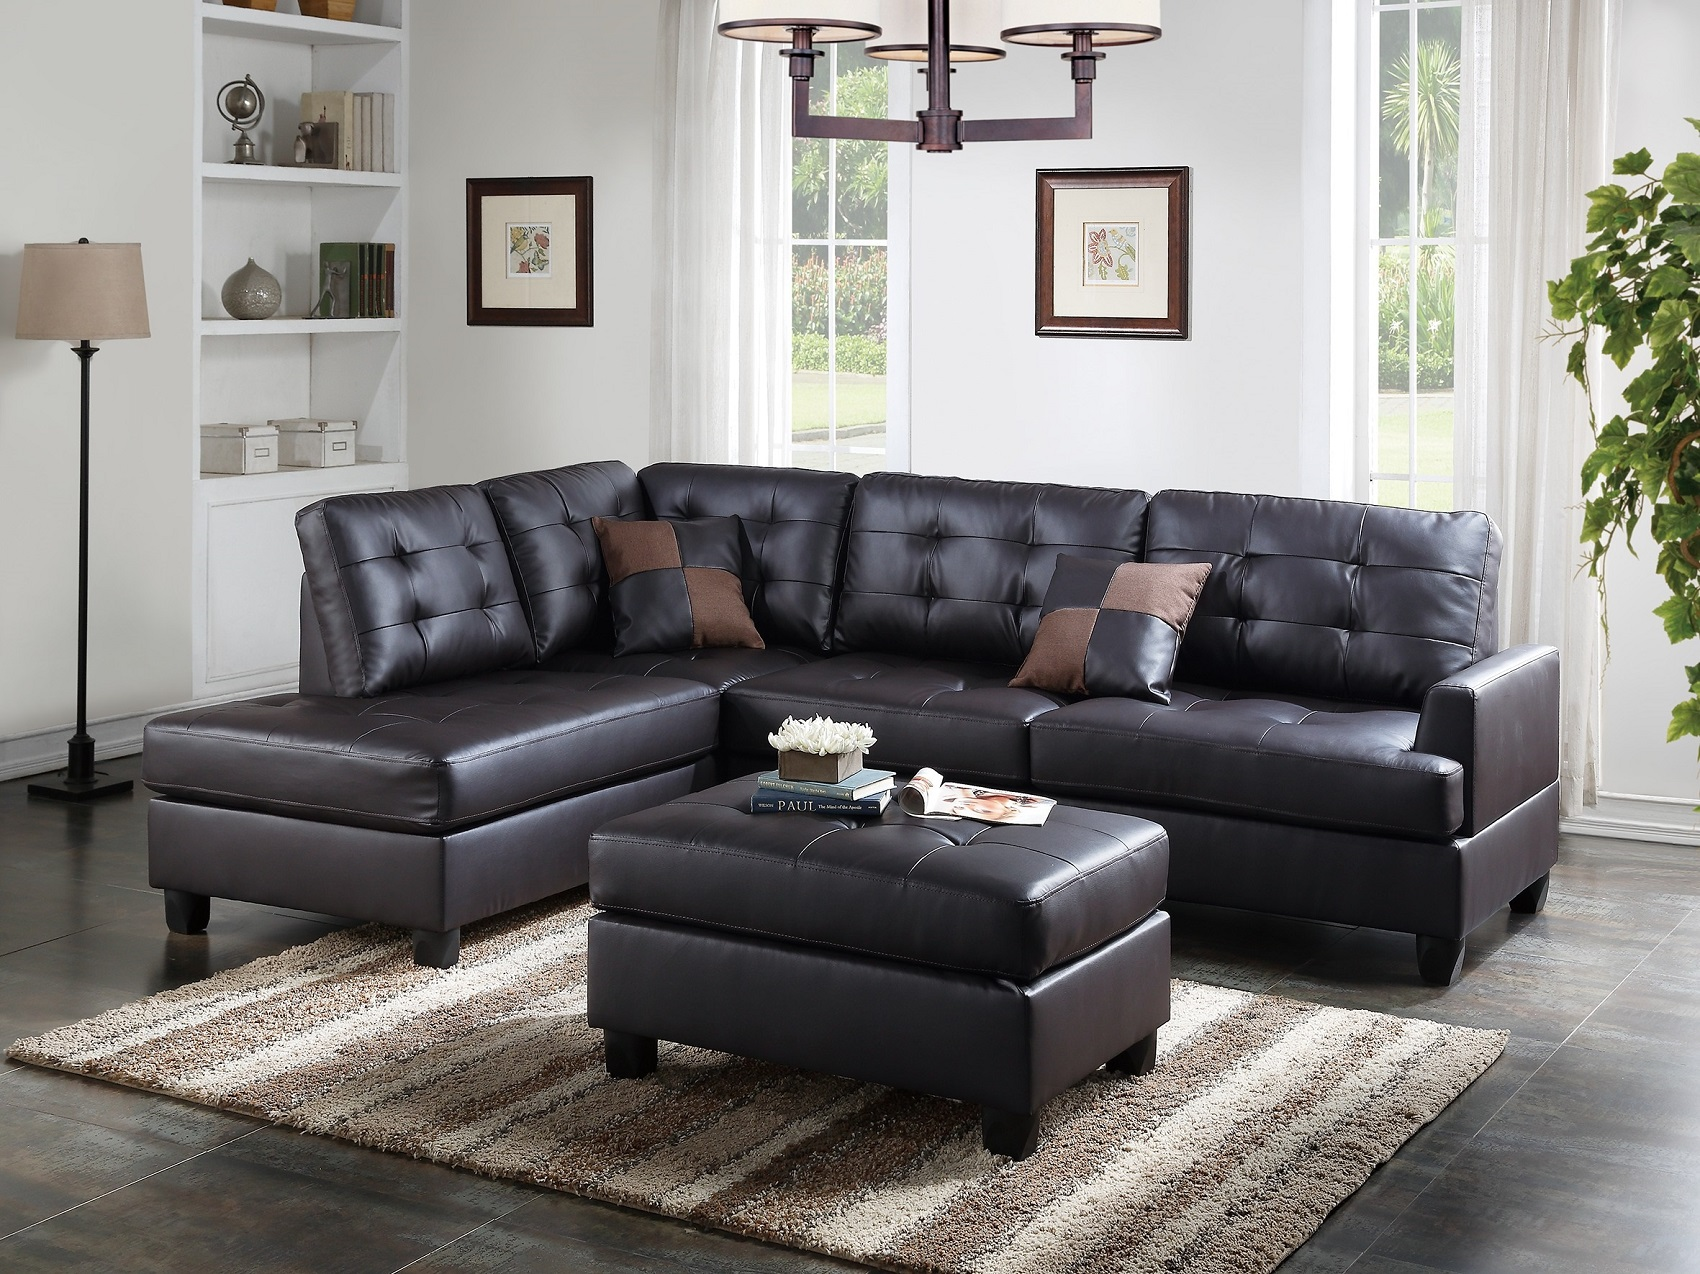 Mathew Sectional Sofa Set Espresso Faux Leather Sofa Chaise Ottoman Tufted  Comfort Couch Living Room Furniture   Walmart.com